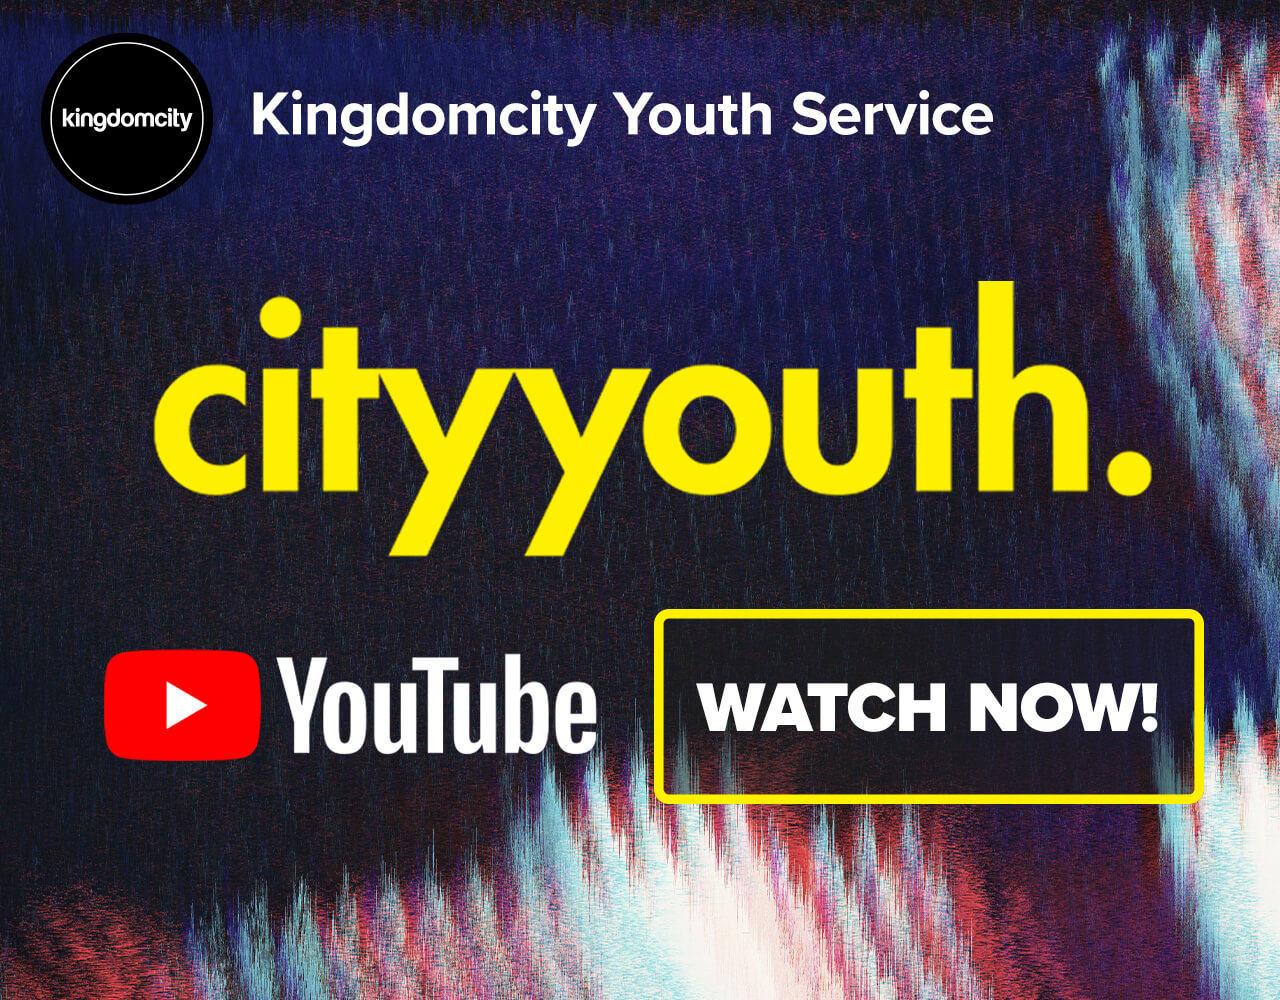 CityYouth Worldwide online service at YouTube